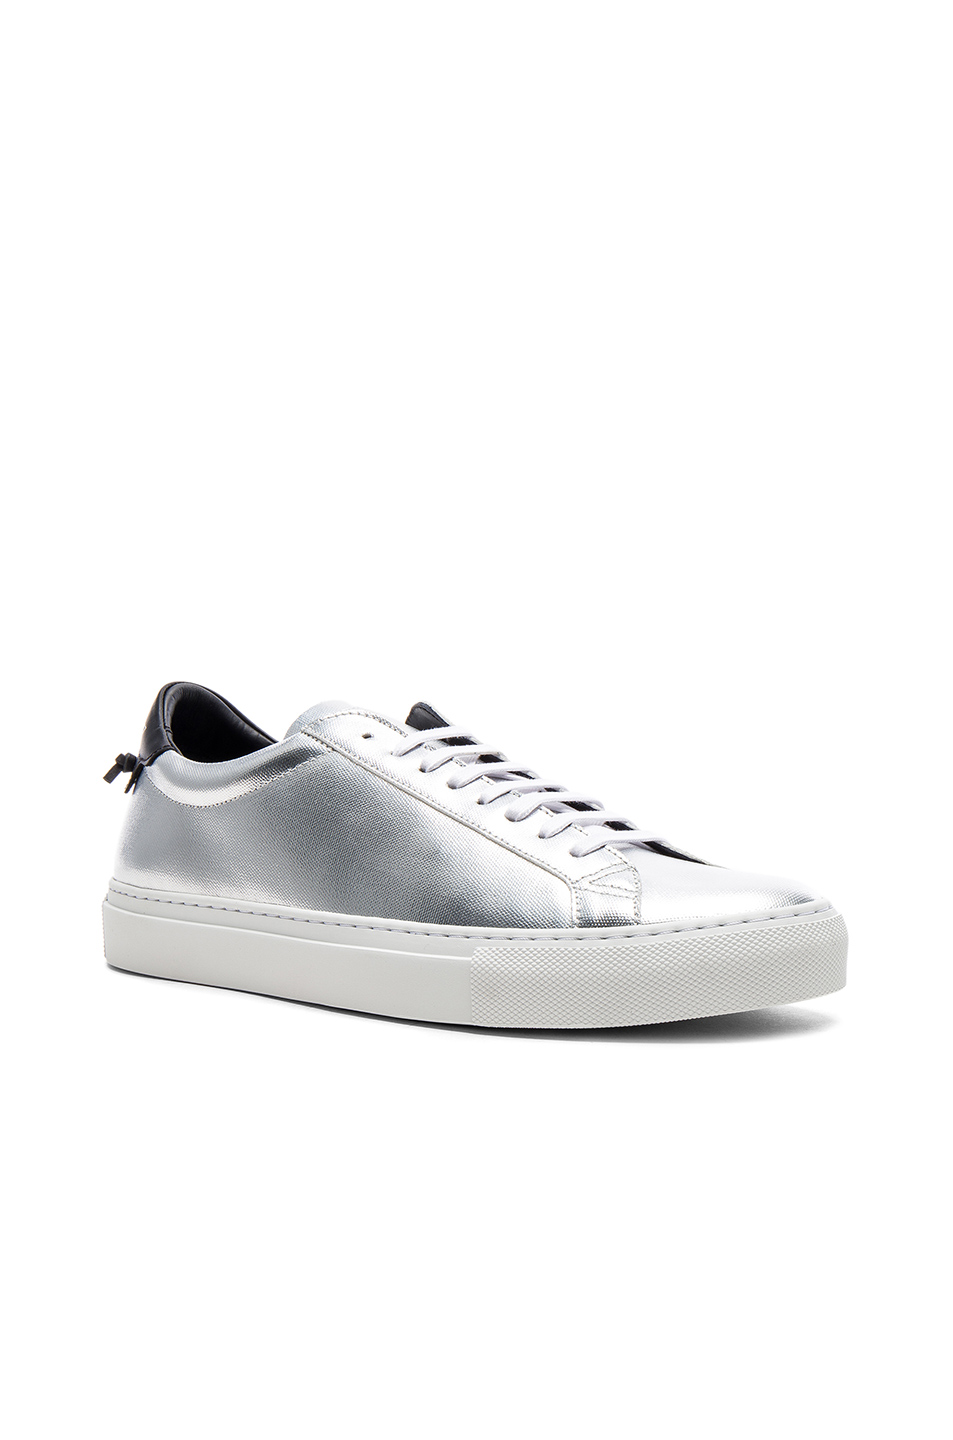 Givenchy Leather Urban Tie Knot Sneakers in Metallics